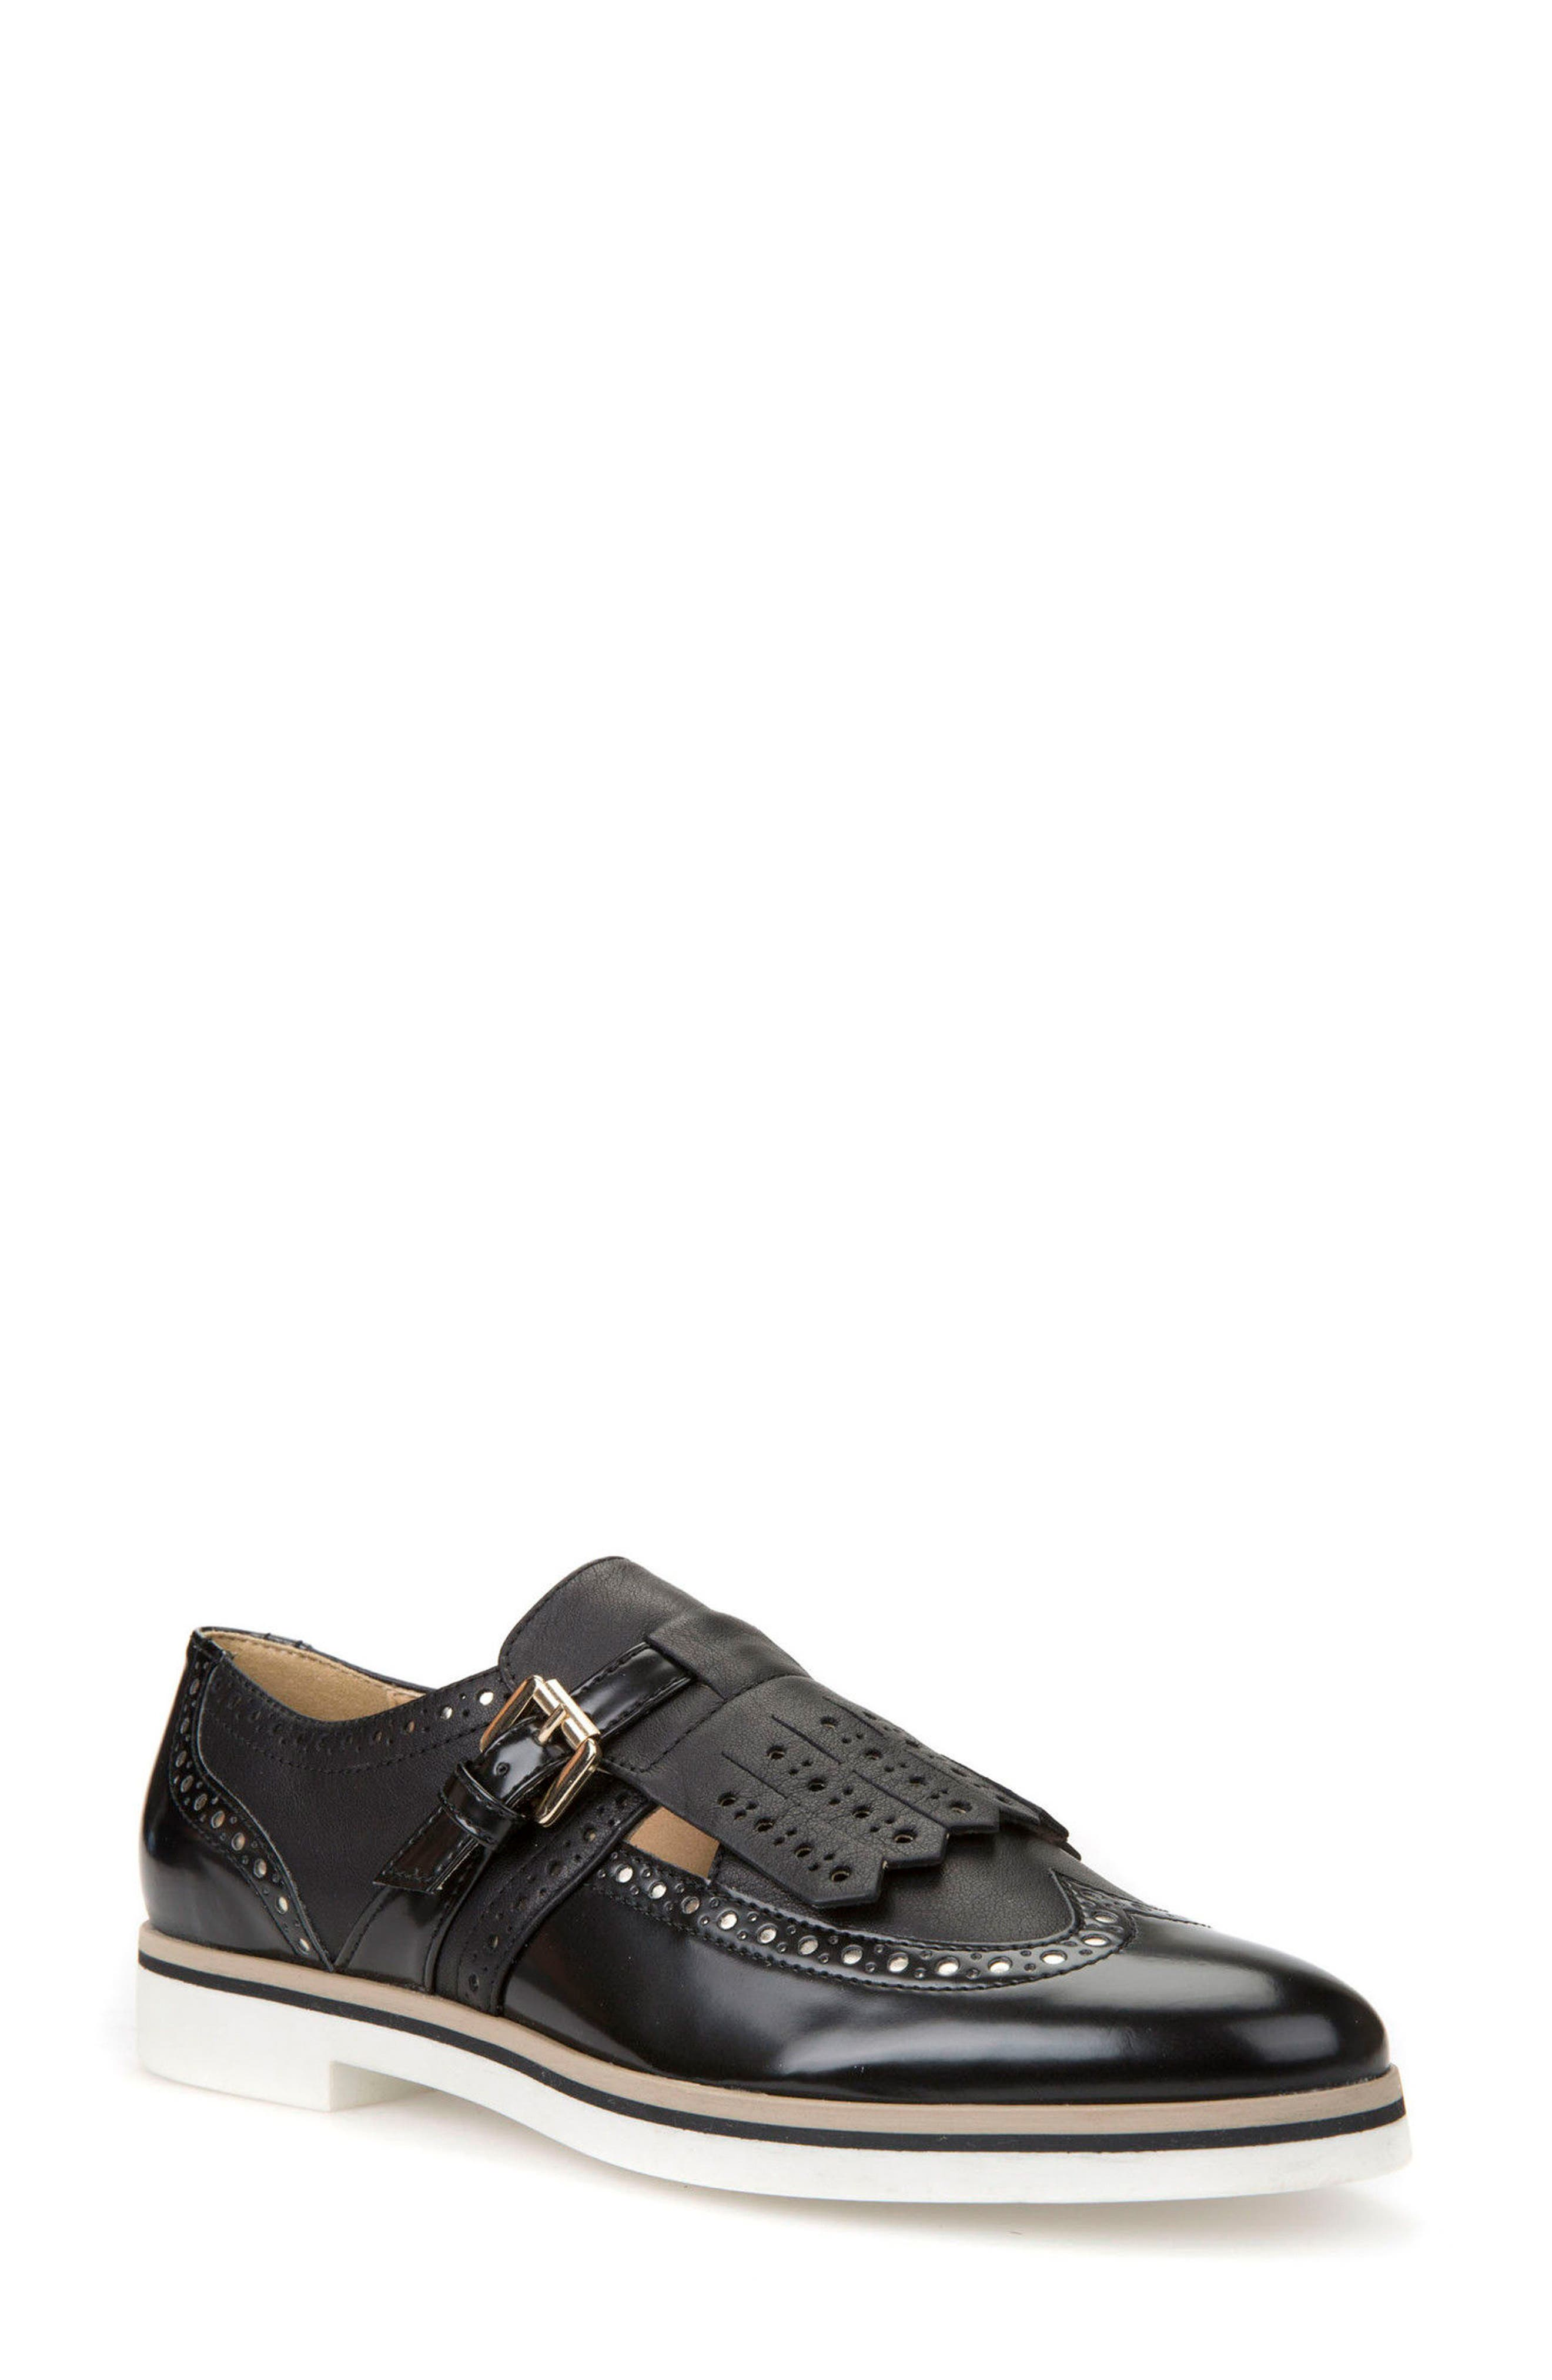 Janalee Cutout Loafer,                             Main thumbnail 1, color,                             Black Leather